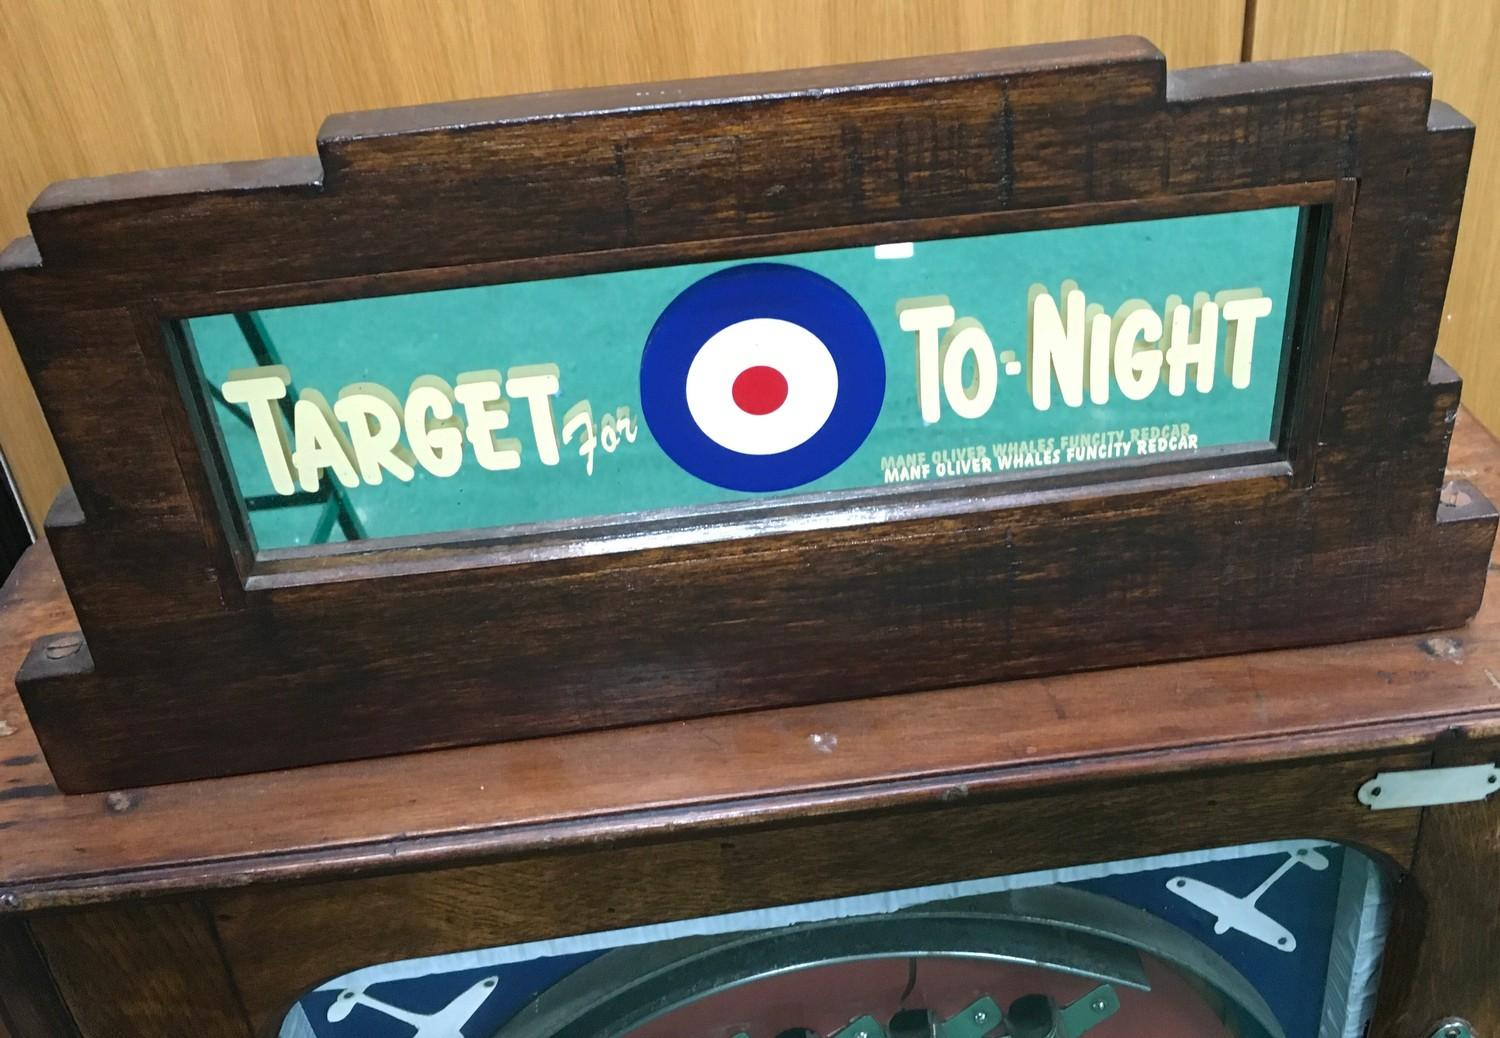 Target for To-Night - Whales Allwin slot machine - working on old 1d. - Image 2 of 3